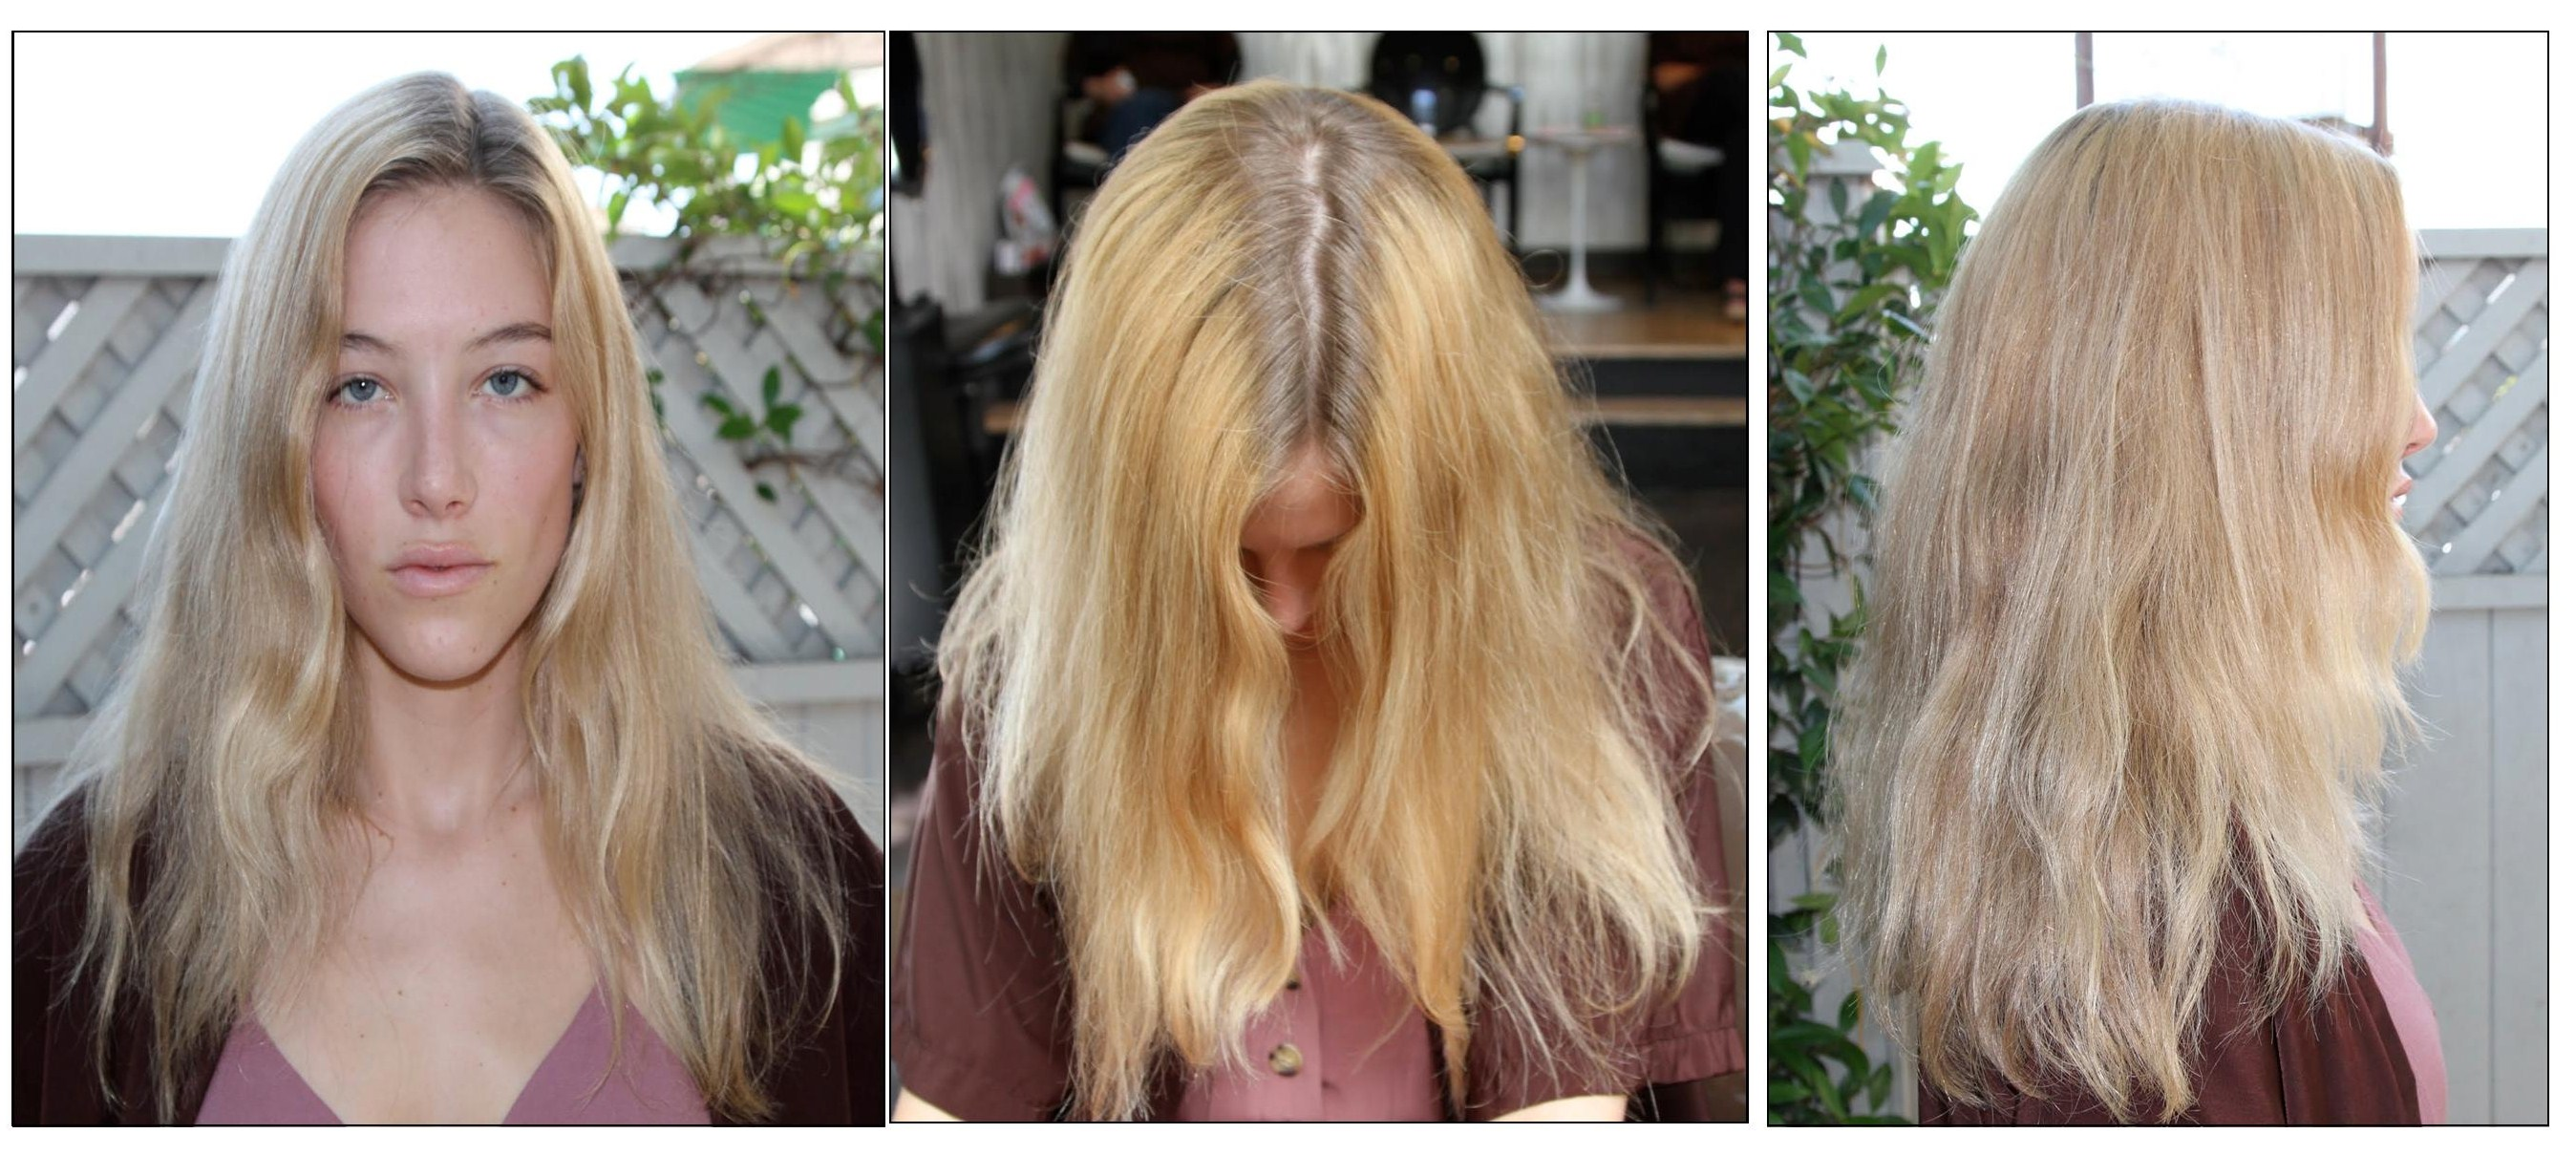 Gillian Zinser Hair Color This sun-kissed hair color by